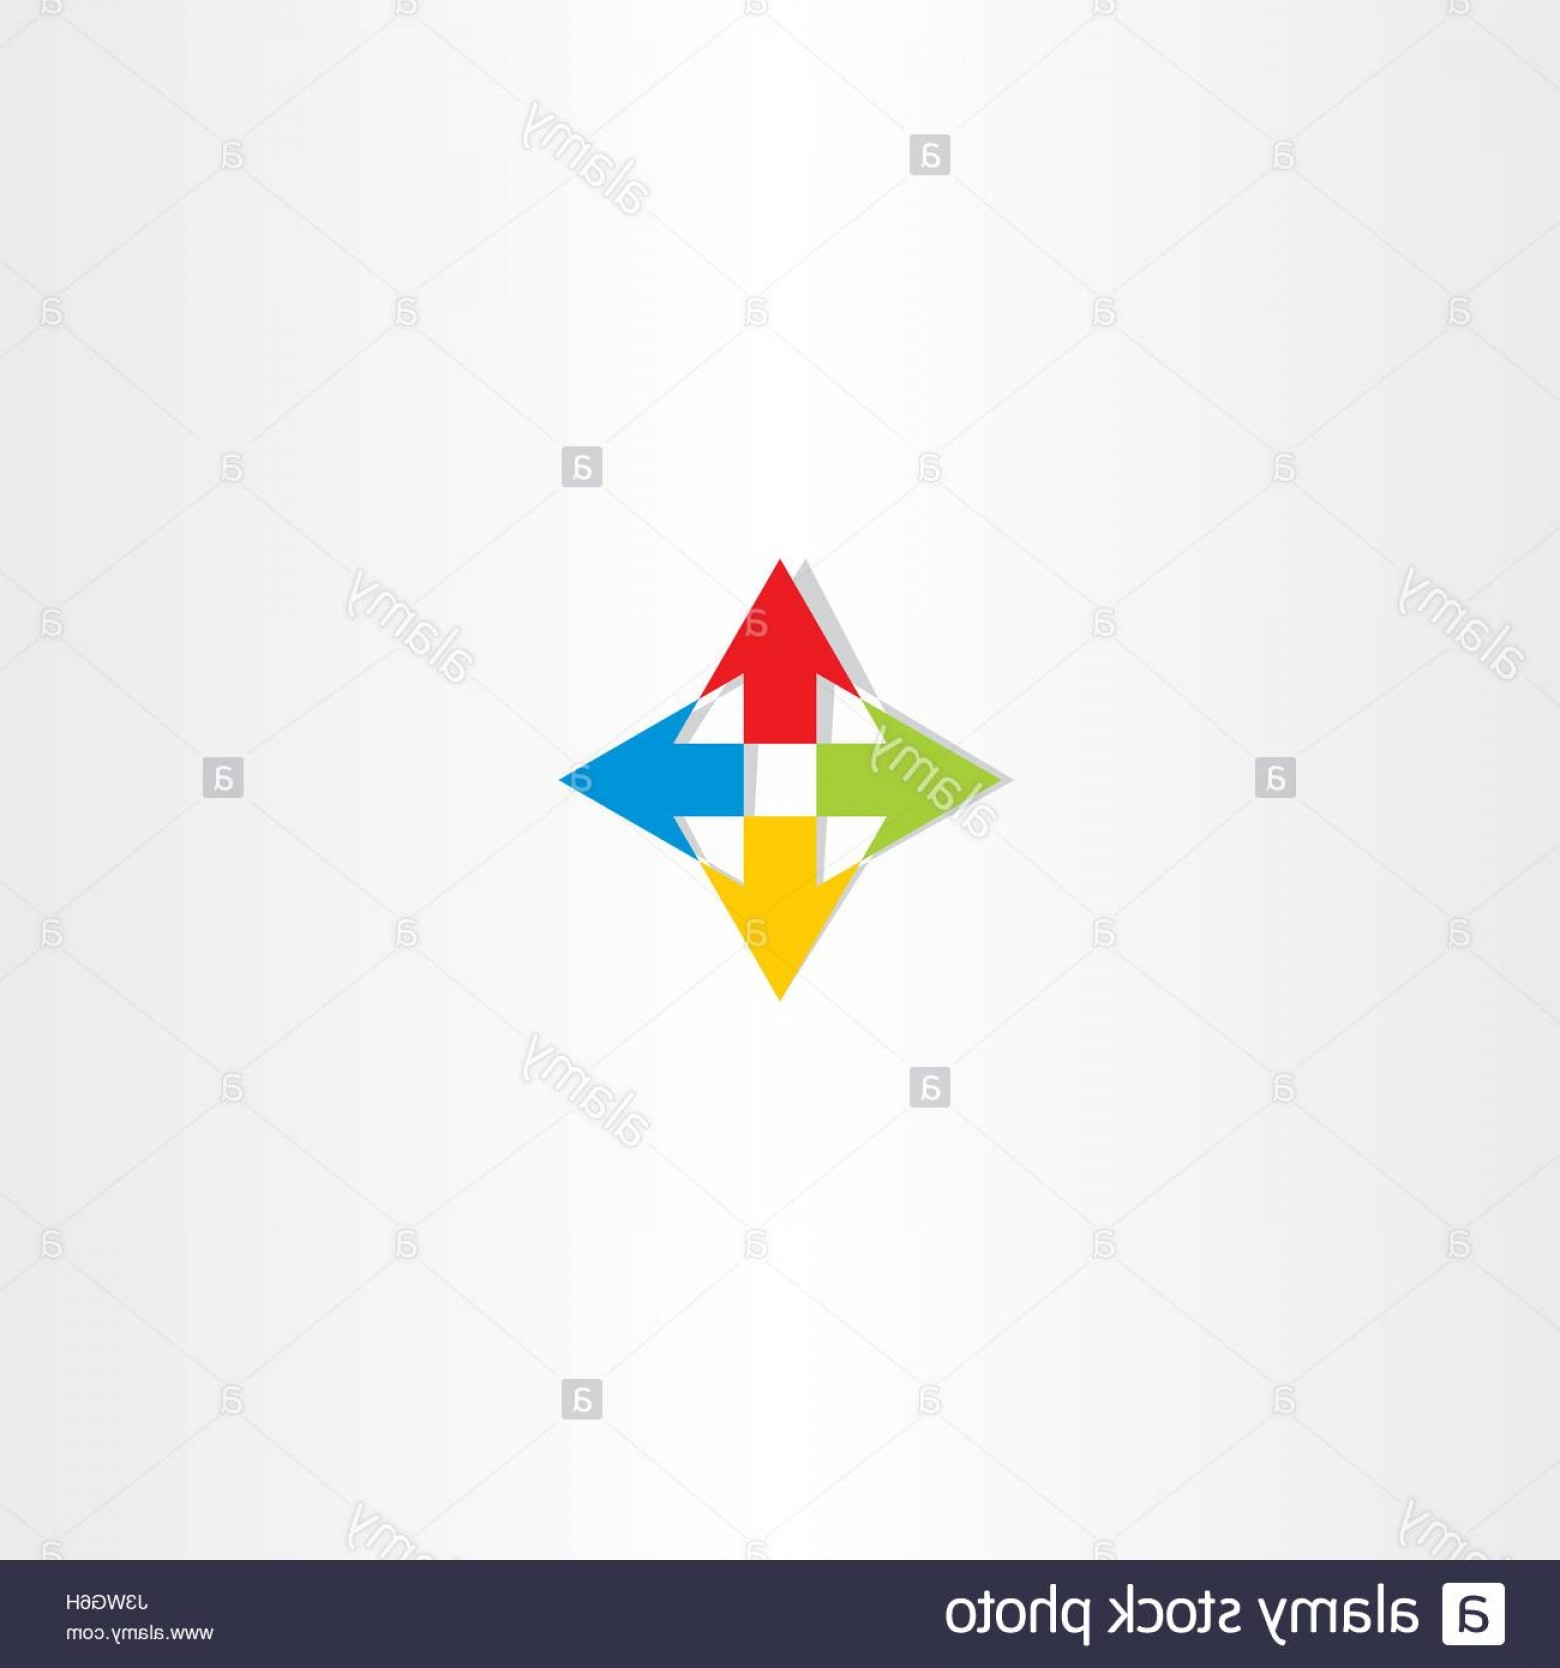 Up And Right Arrows Vector: Stock Photo Up Down Left Right Arrow Icon Sign Logo